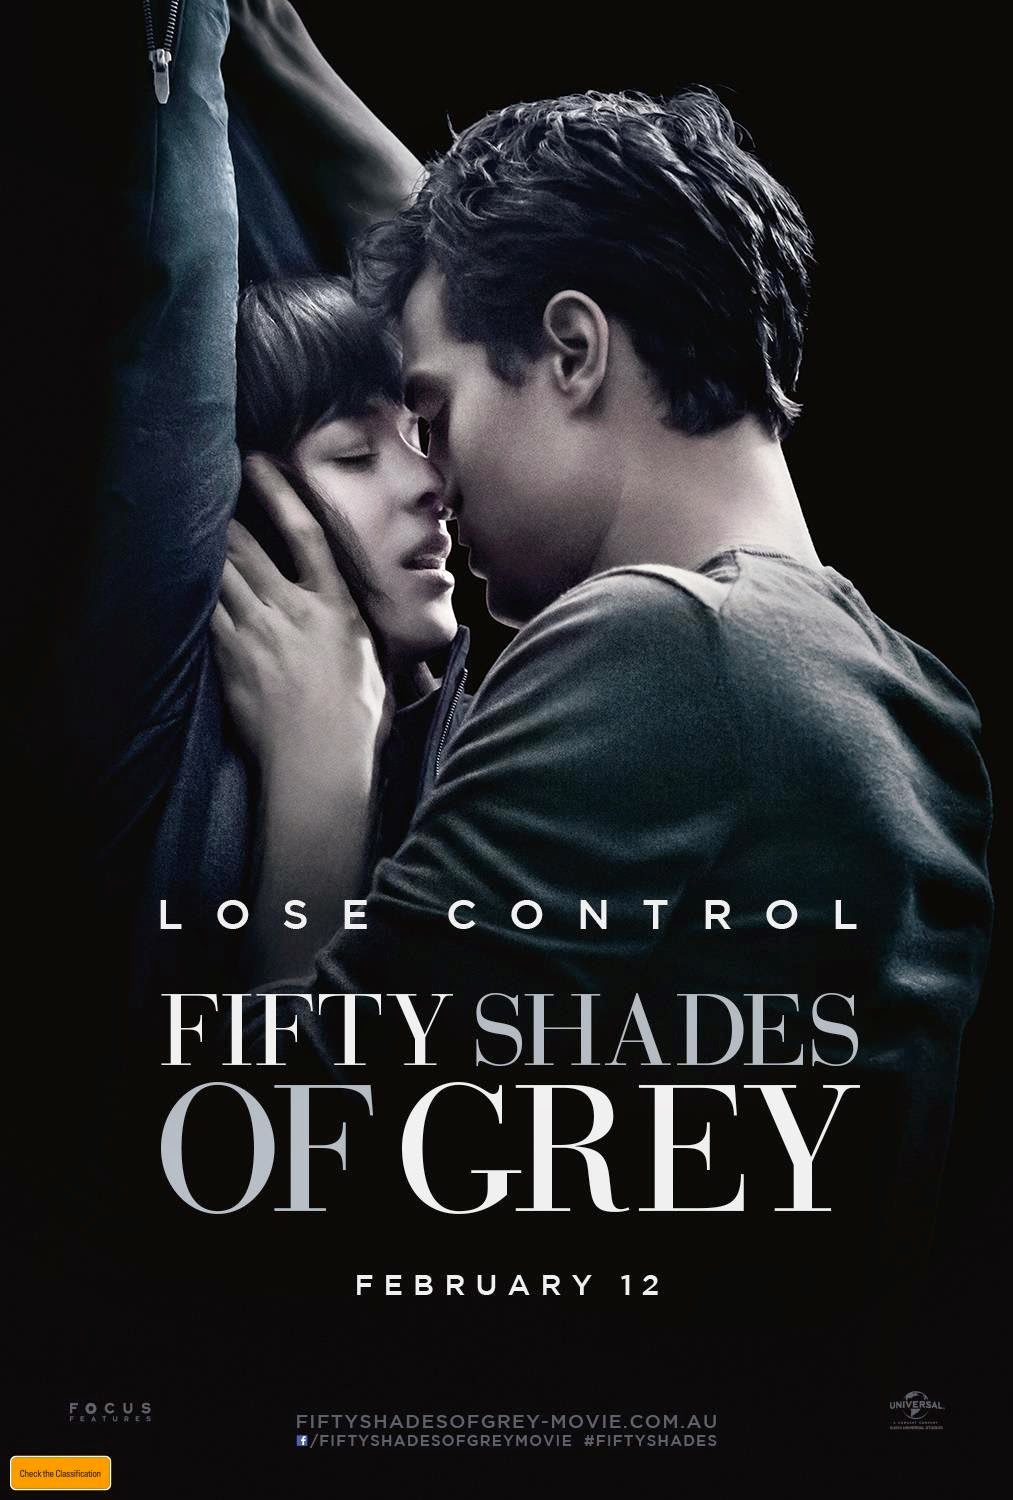 http://www.culture21century.gr/2015/02/fifty-shades-of-grey-movie-review.html